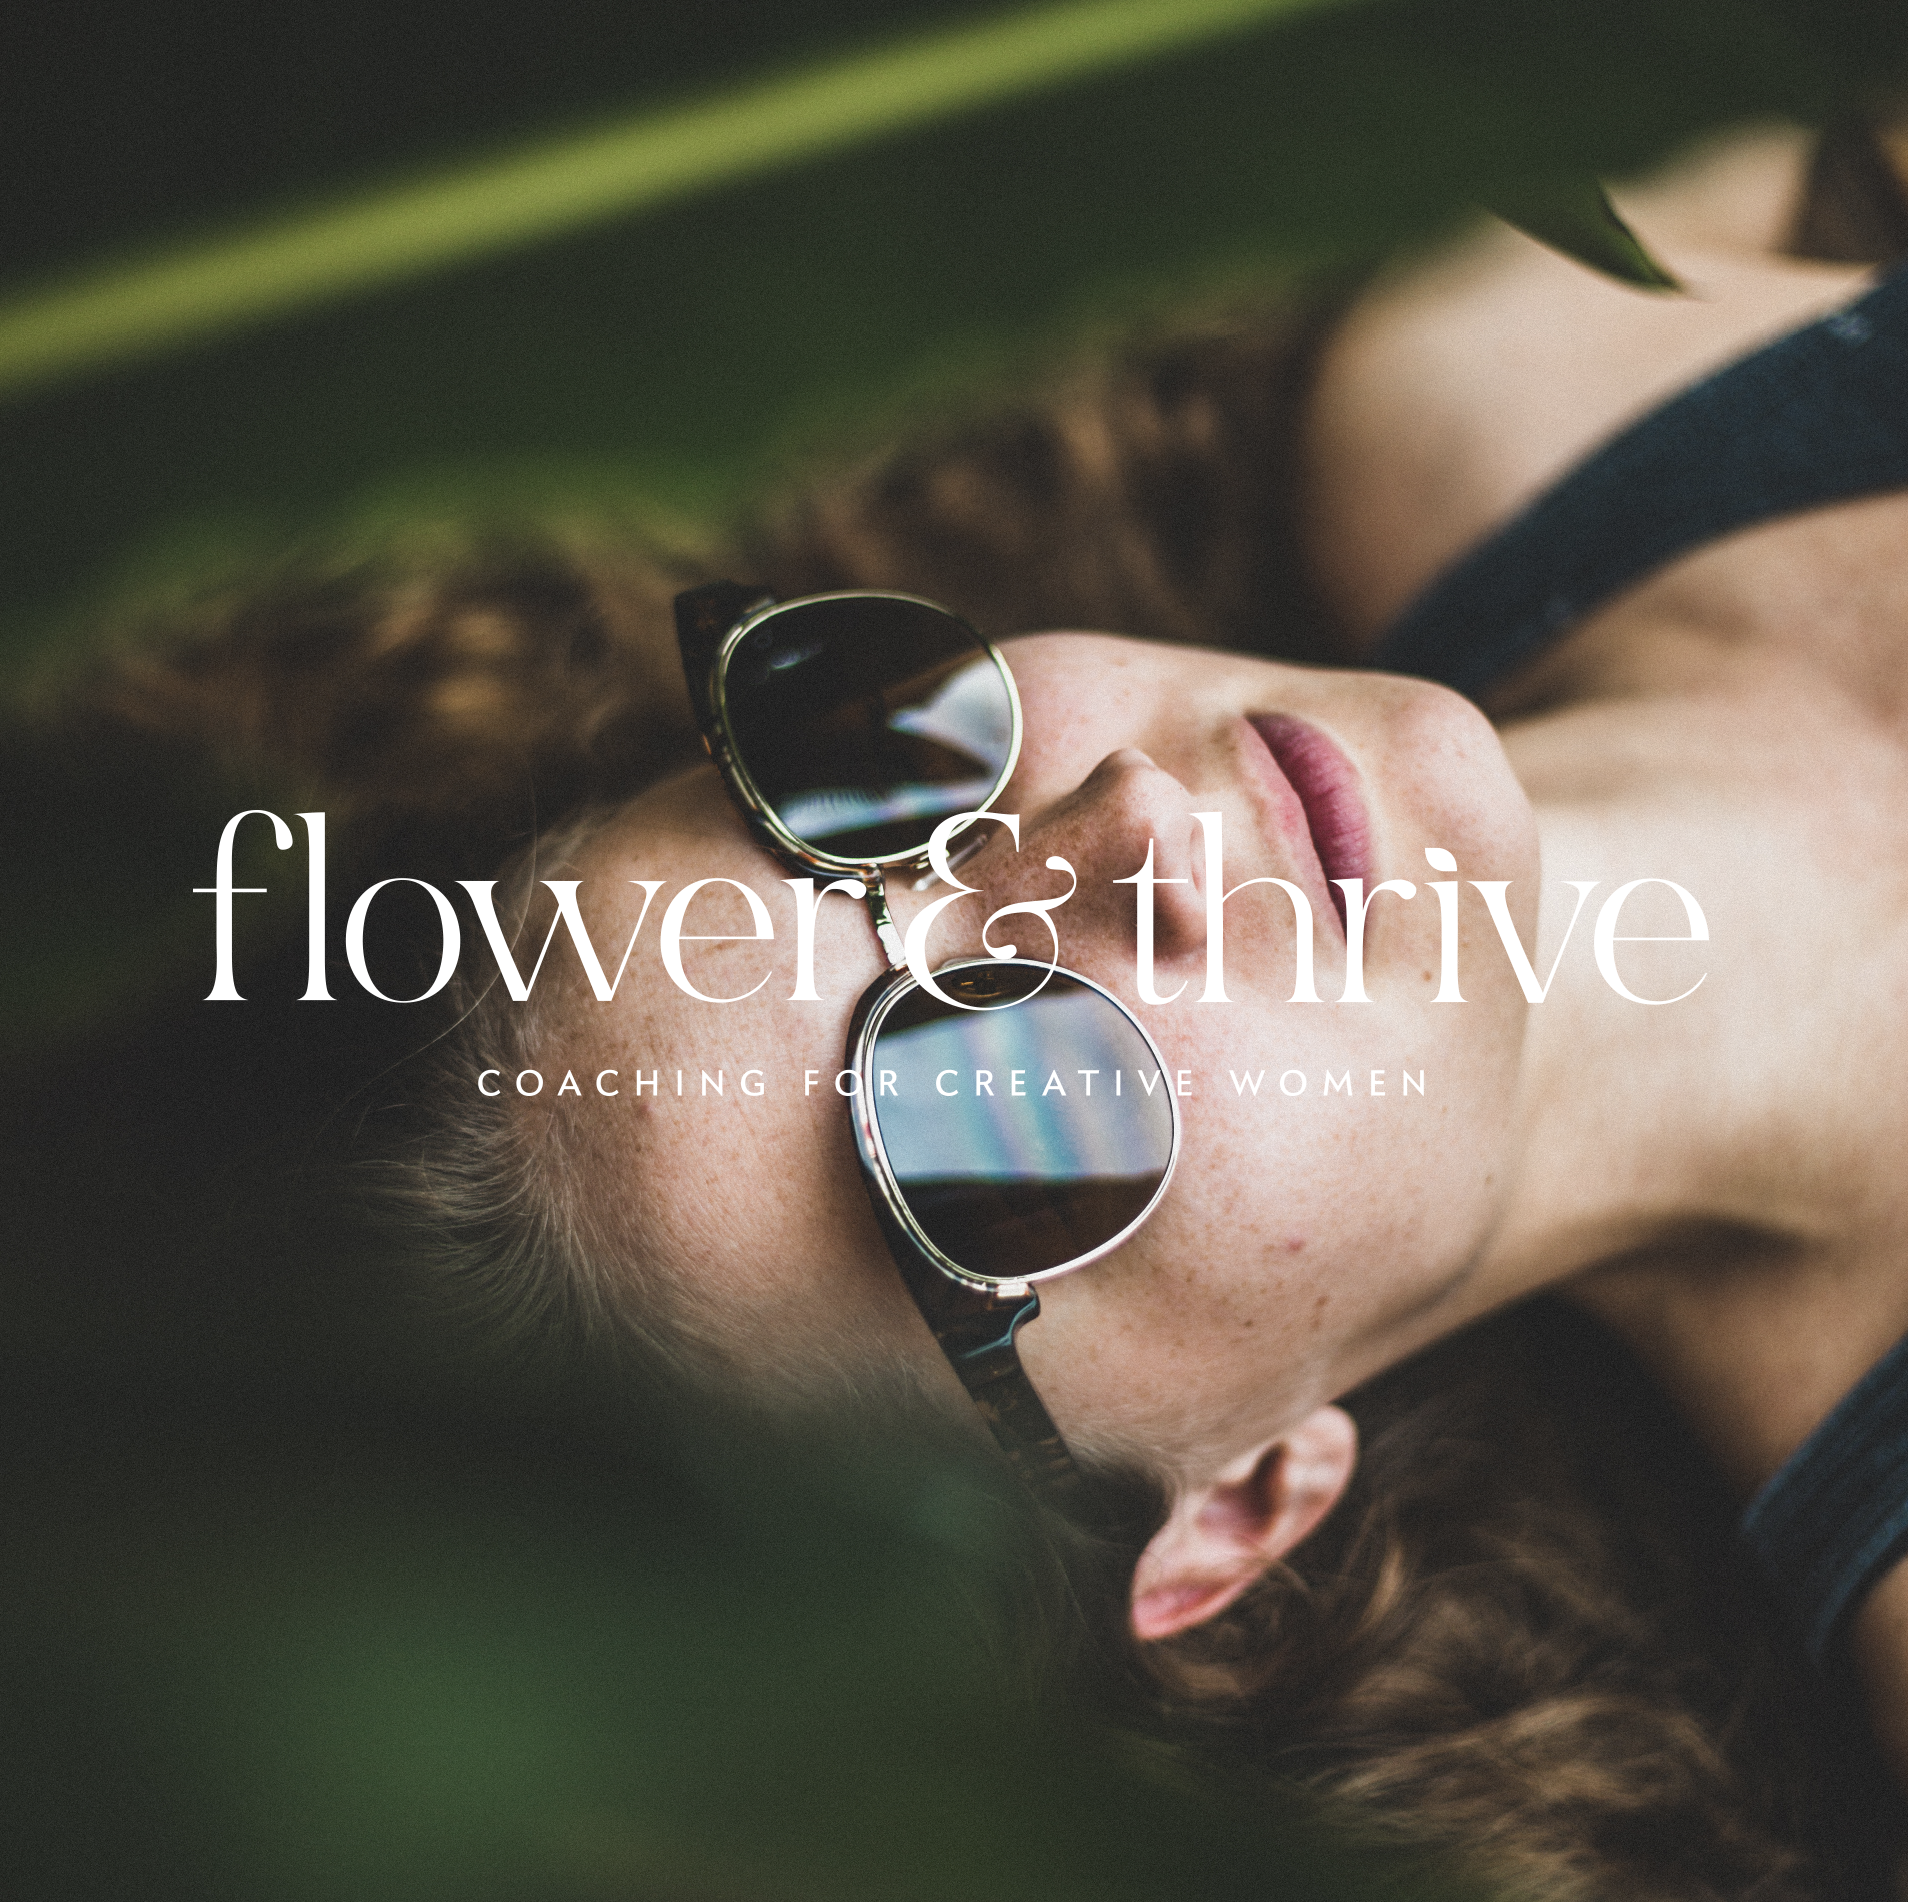 FLOWER & THRIVE -  LIFESTYLE / BUSINESS COACHING BRAND PACKAGE